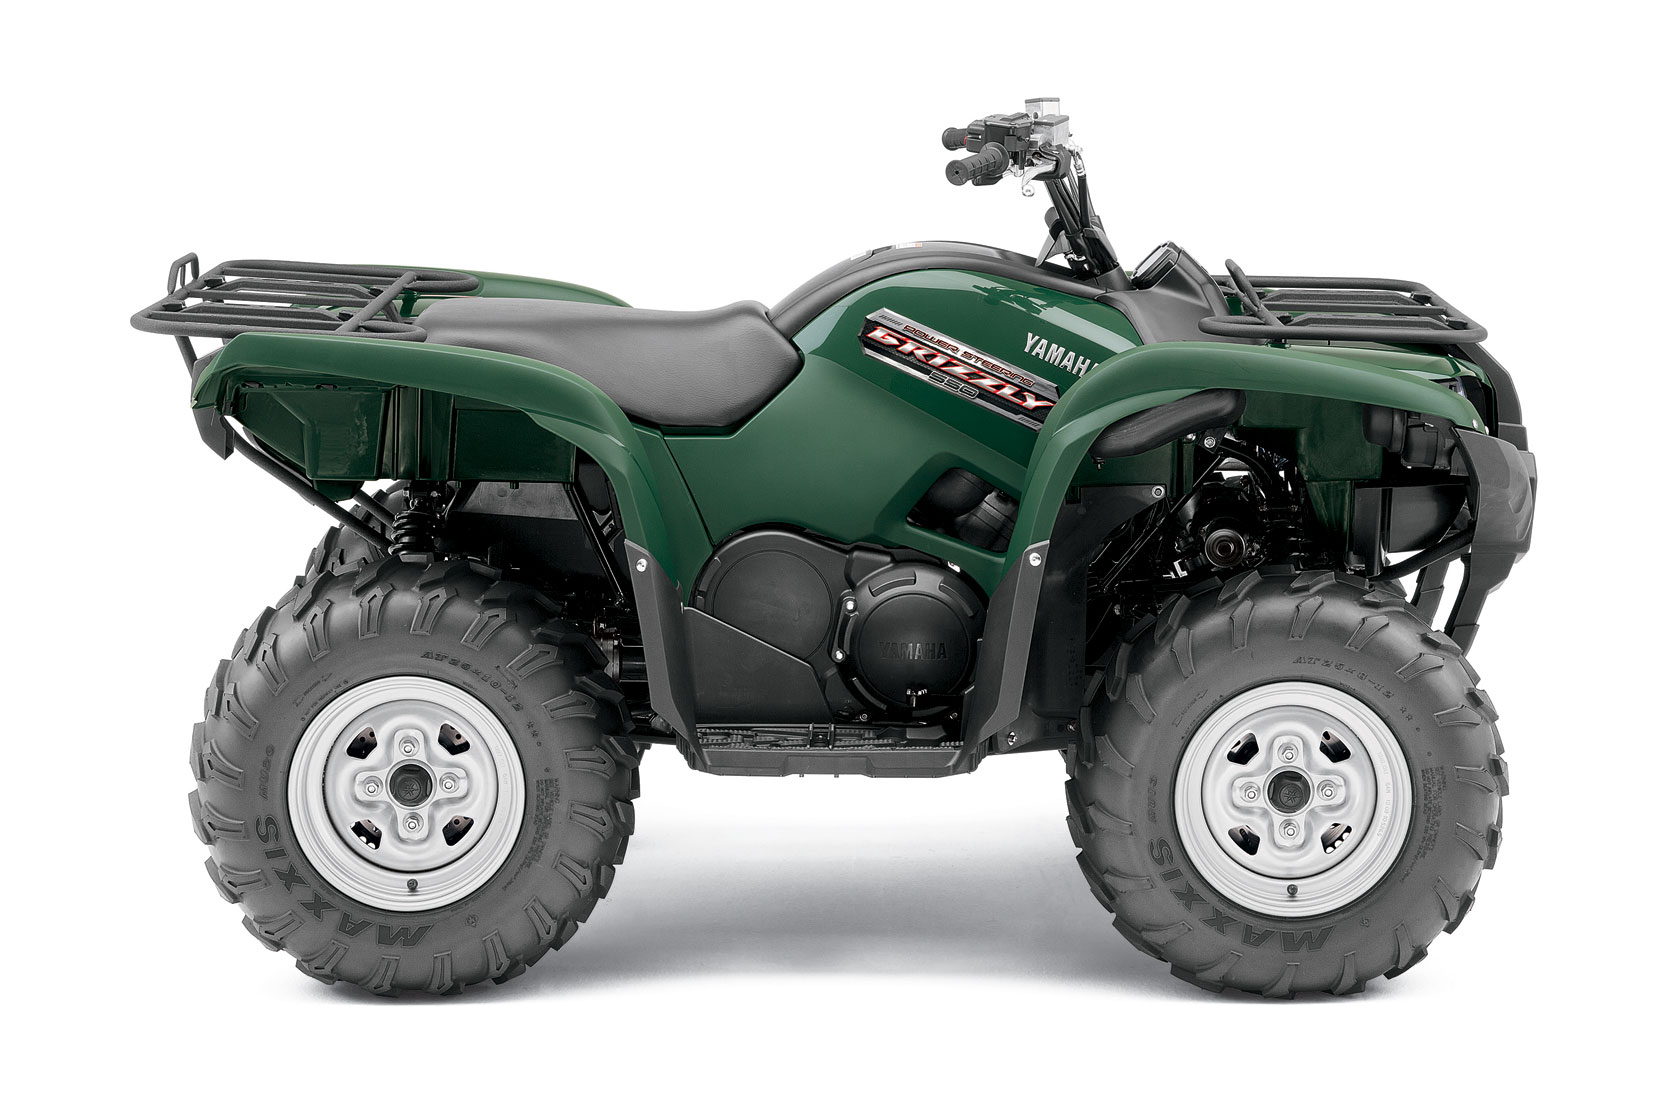 2012 yamaha grizzly 550 fi auto 4x4 eps review. Black Bedroom Furniture Sets. Home Design Ideas